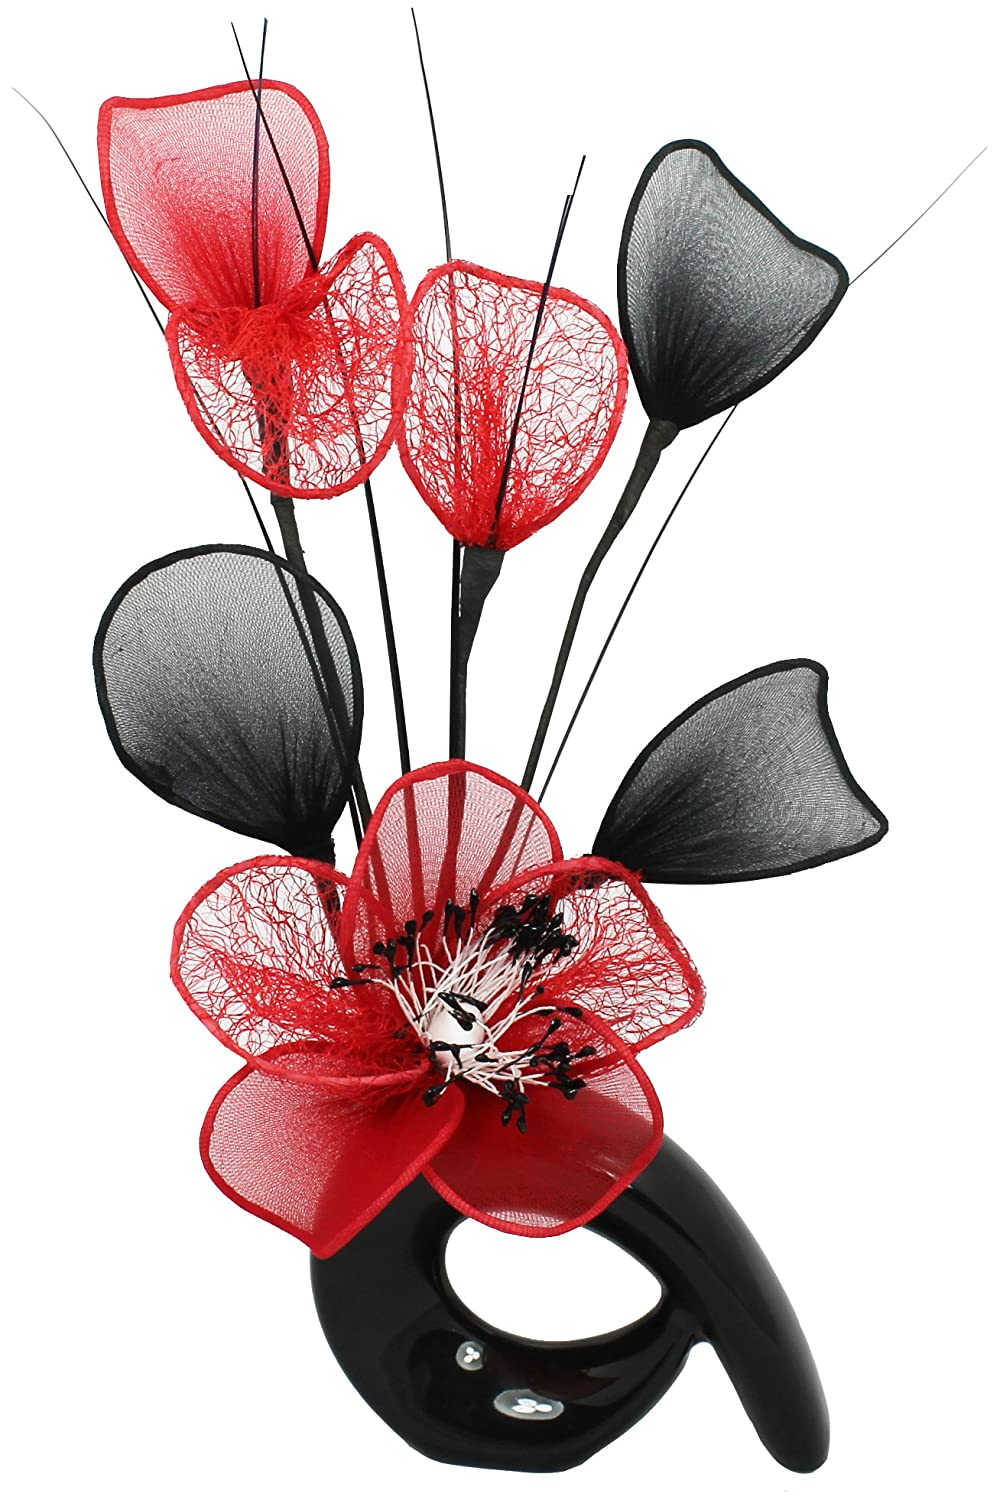 Black Vase with Red Artificial Flowers, Ornaments for Living Room, Window Sill, Home Accessories, 32cm Flourish 798611